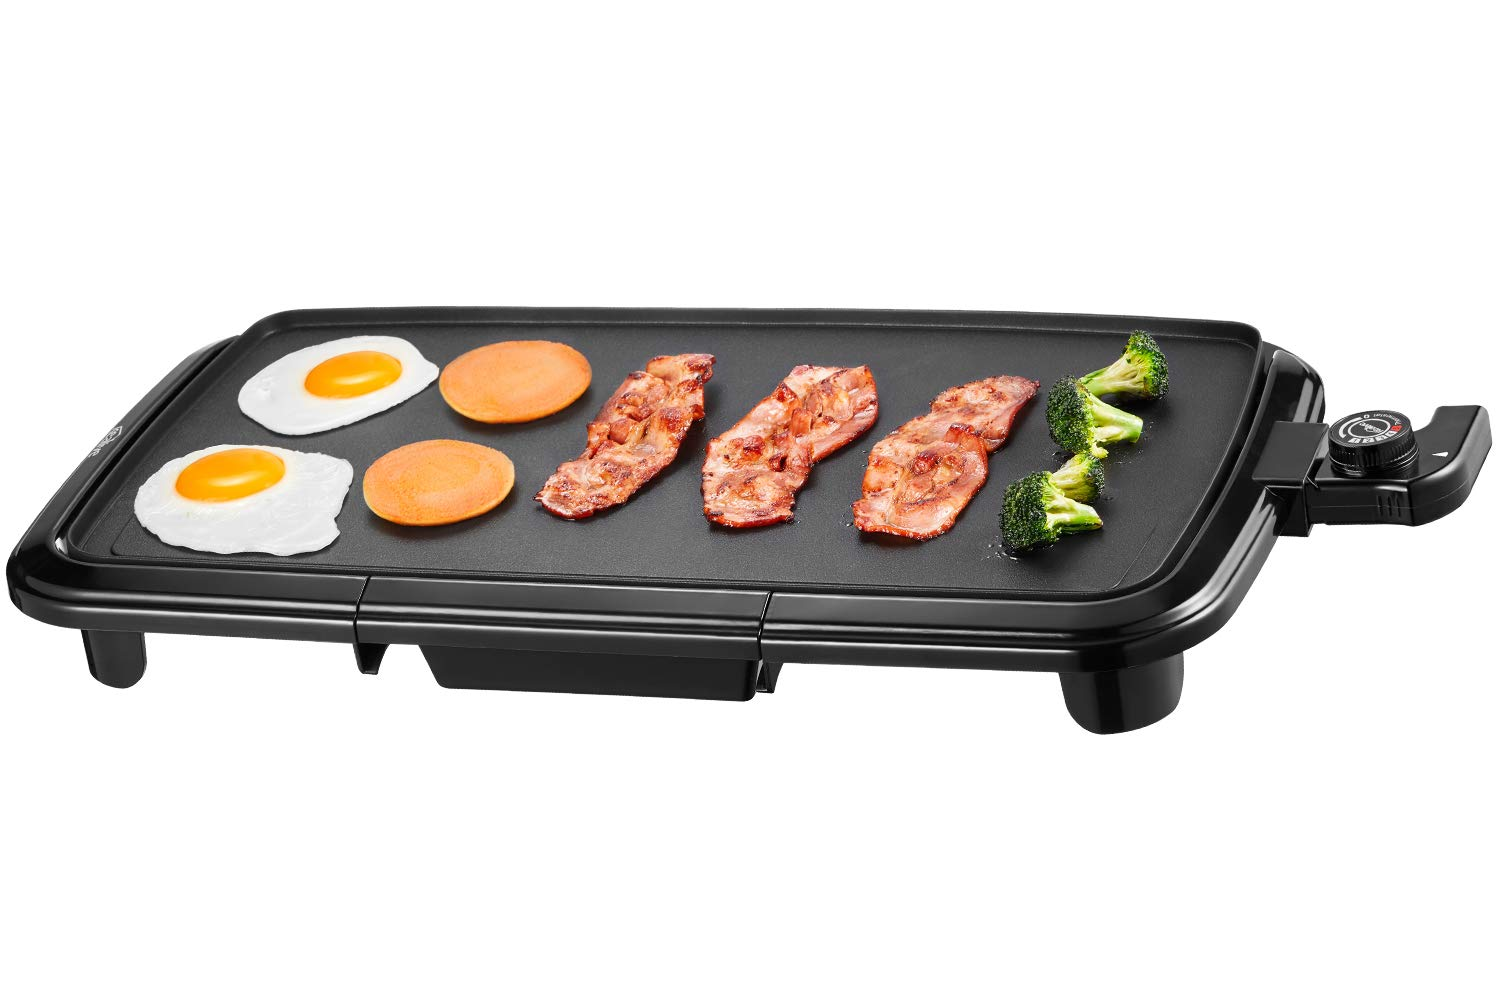 Kealive Griddle, Family-Sized Electric Grill Griddle 1500W with Drip Tray, Non-stick, 10 x20 , Black